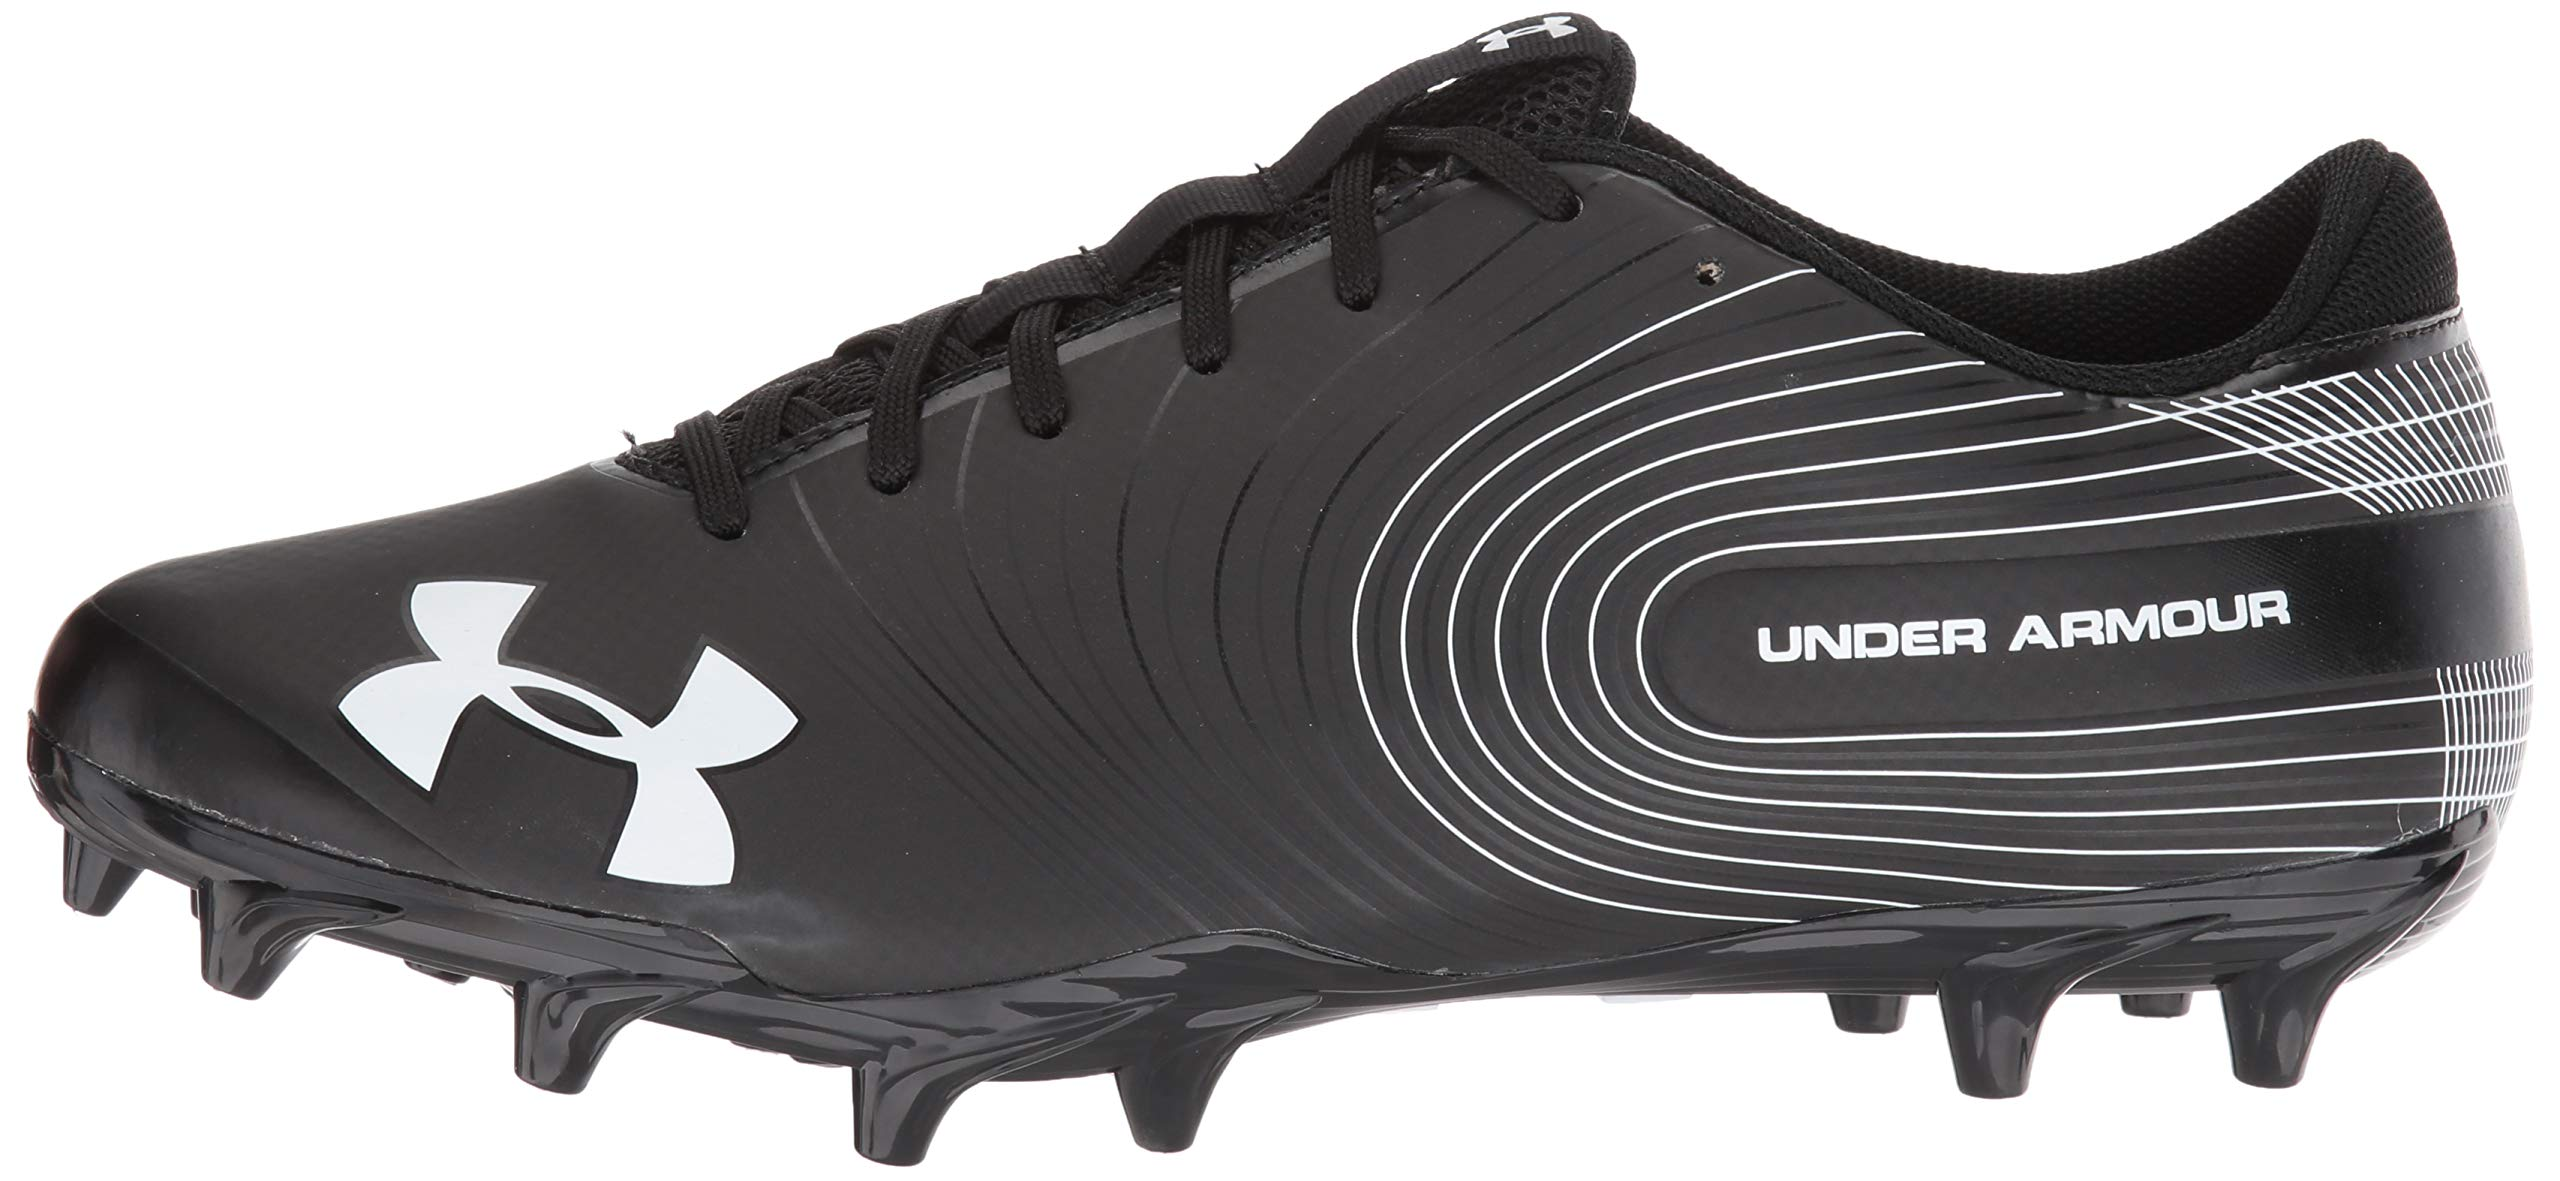 Under Armour Men's Speed Phantom MC Football Shoe Black (001)/White 6.5 by Under Armour (Image #5)